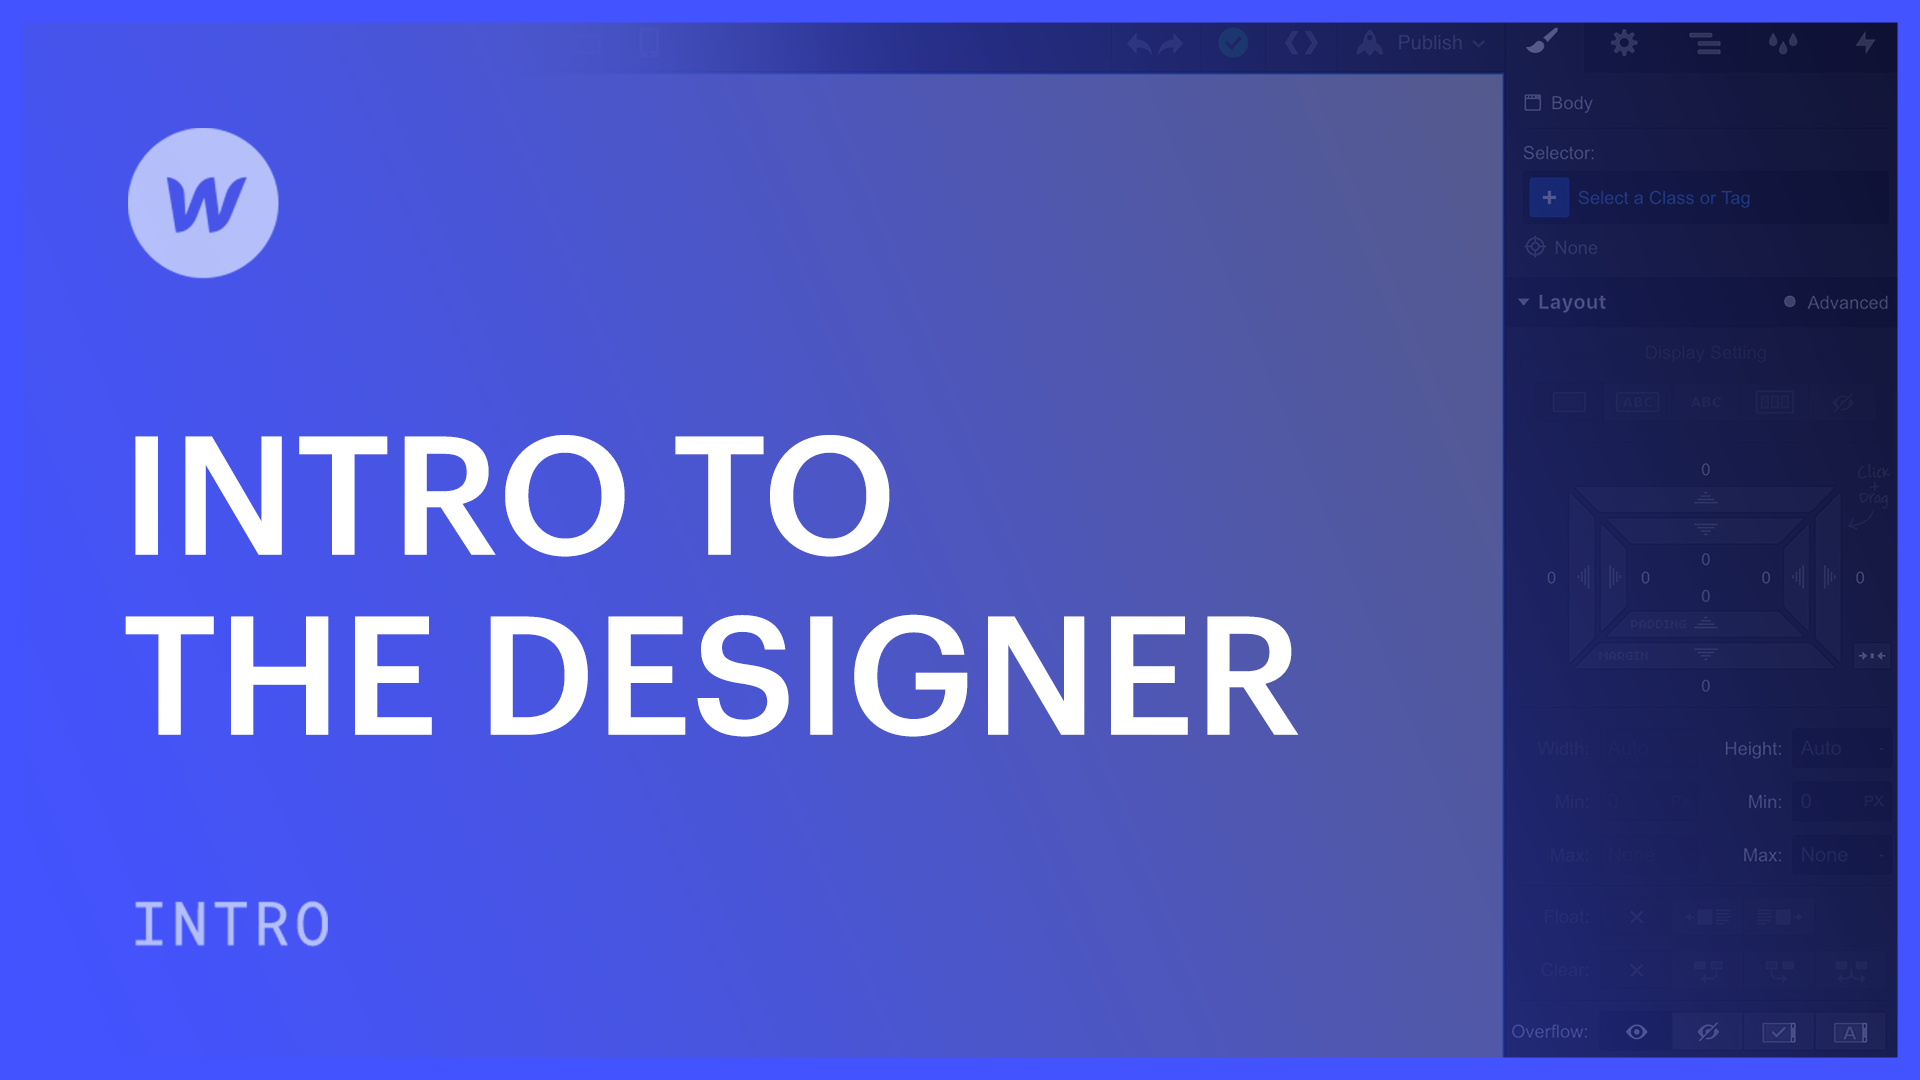 Intro to the Designer